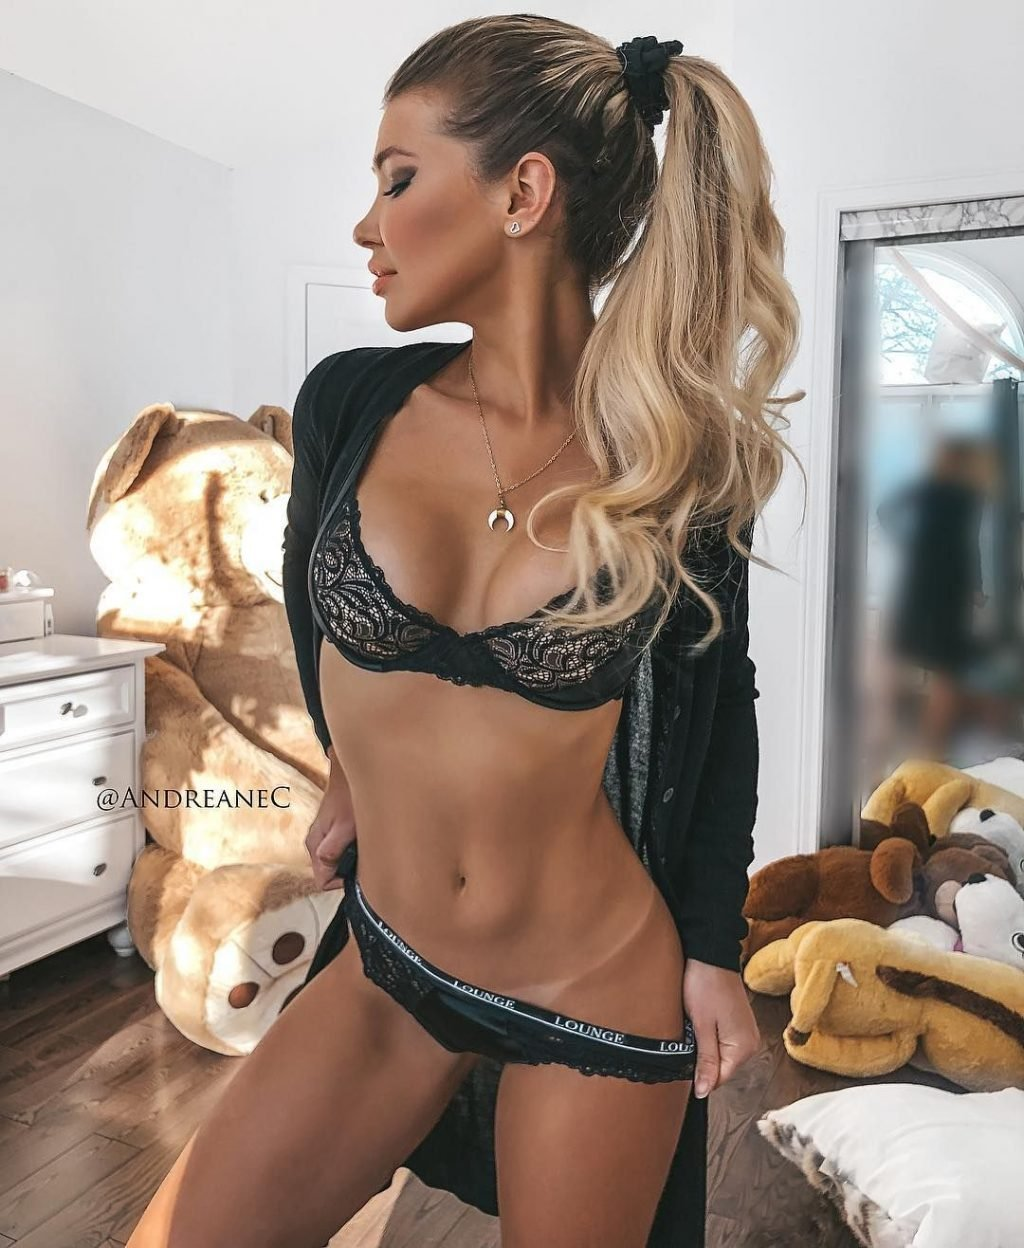 Andreane Chamberland Nude & Sexy (66 Photos)